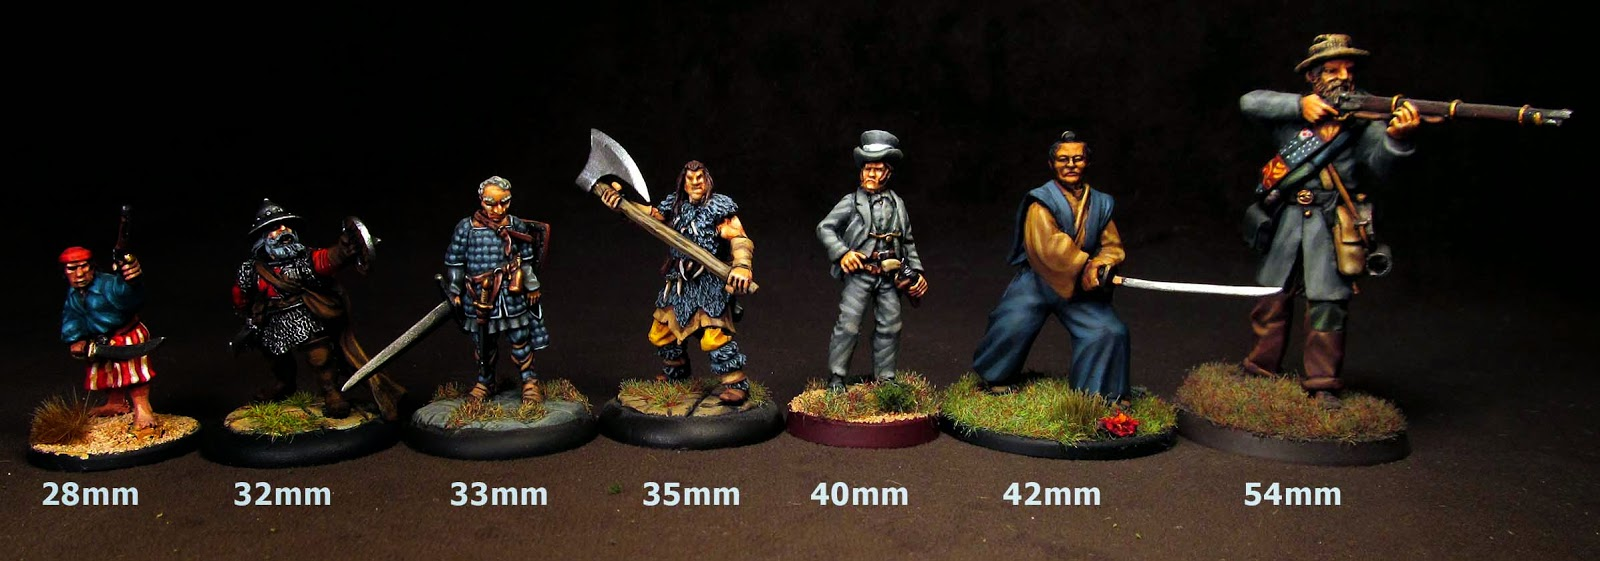 Actual Size 28mm Figures Related Keywords & Suggestions - Actual